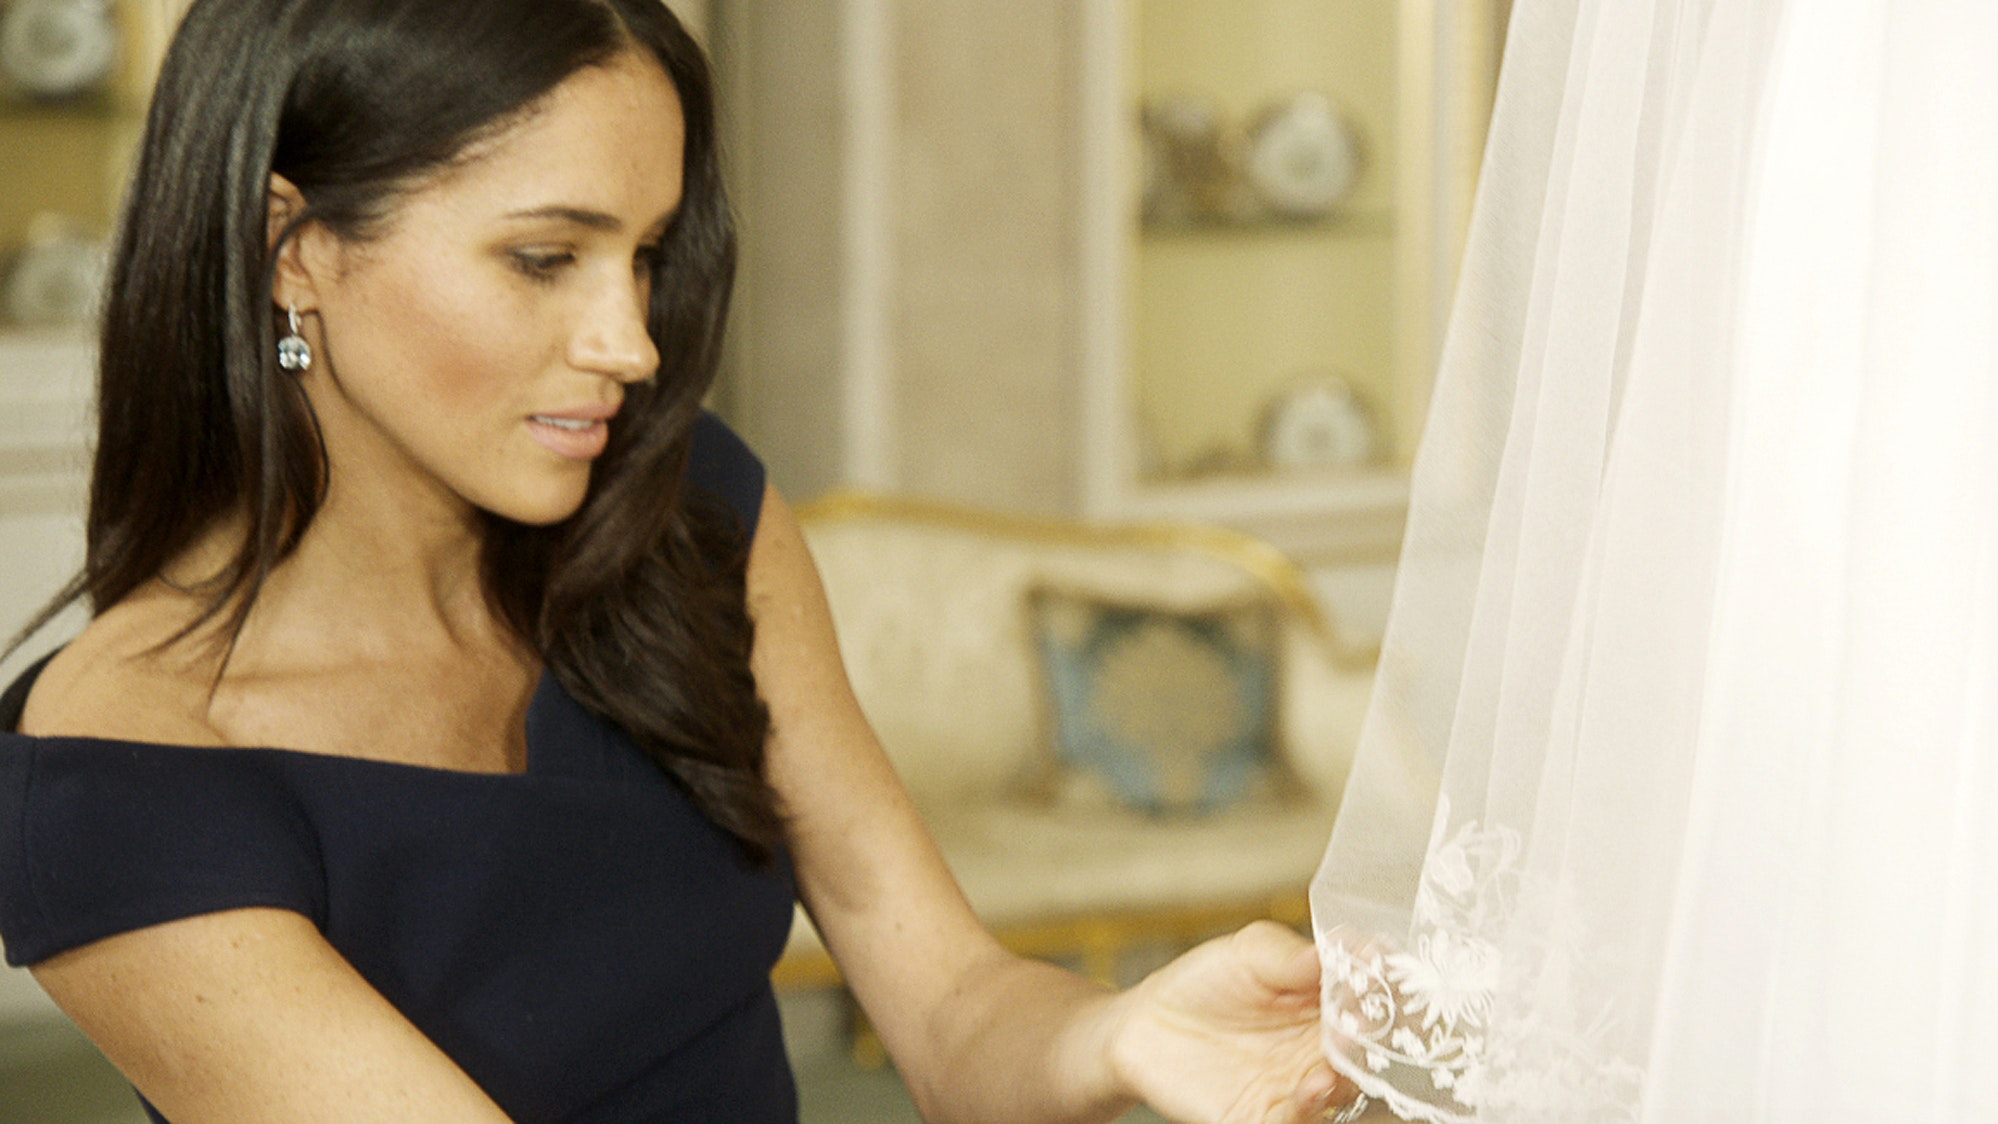 Meghan describes 'magical' wedding day in new documentary